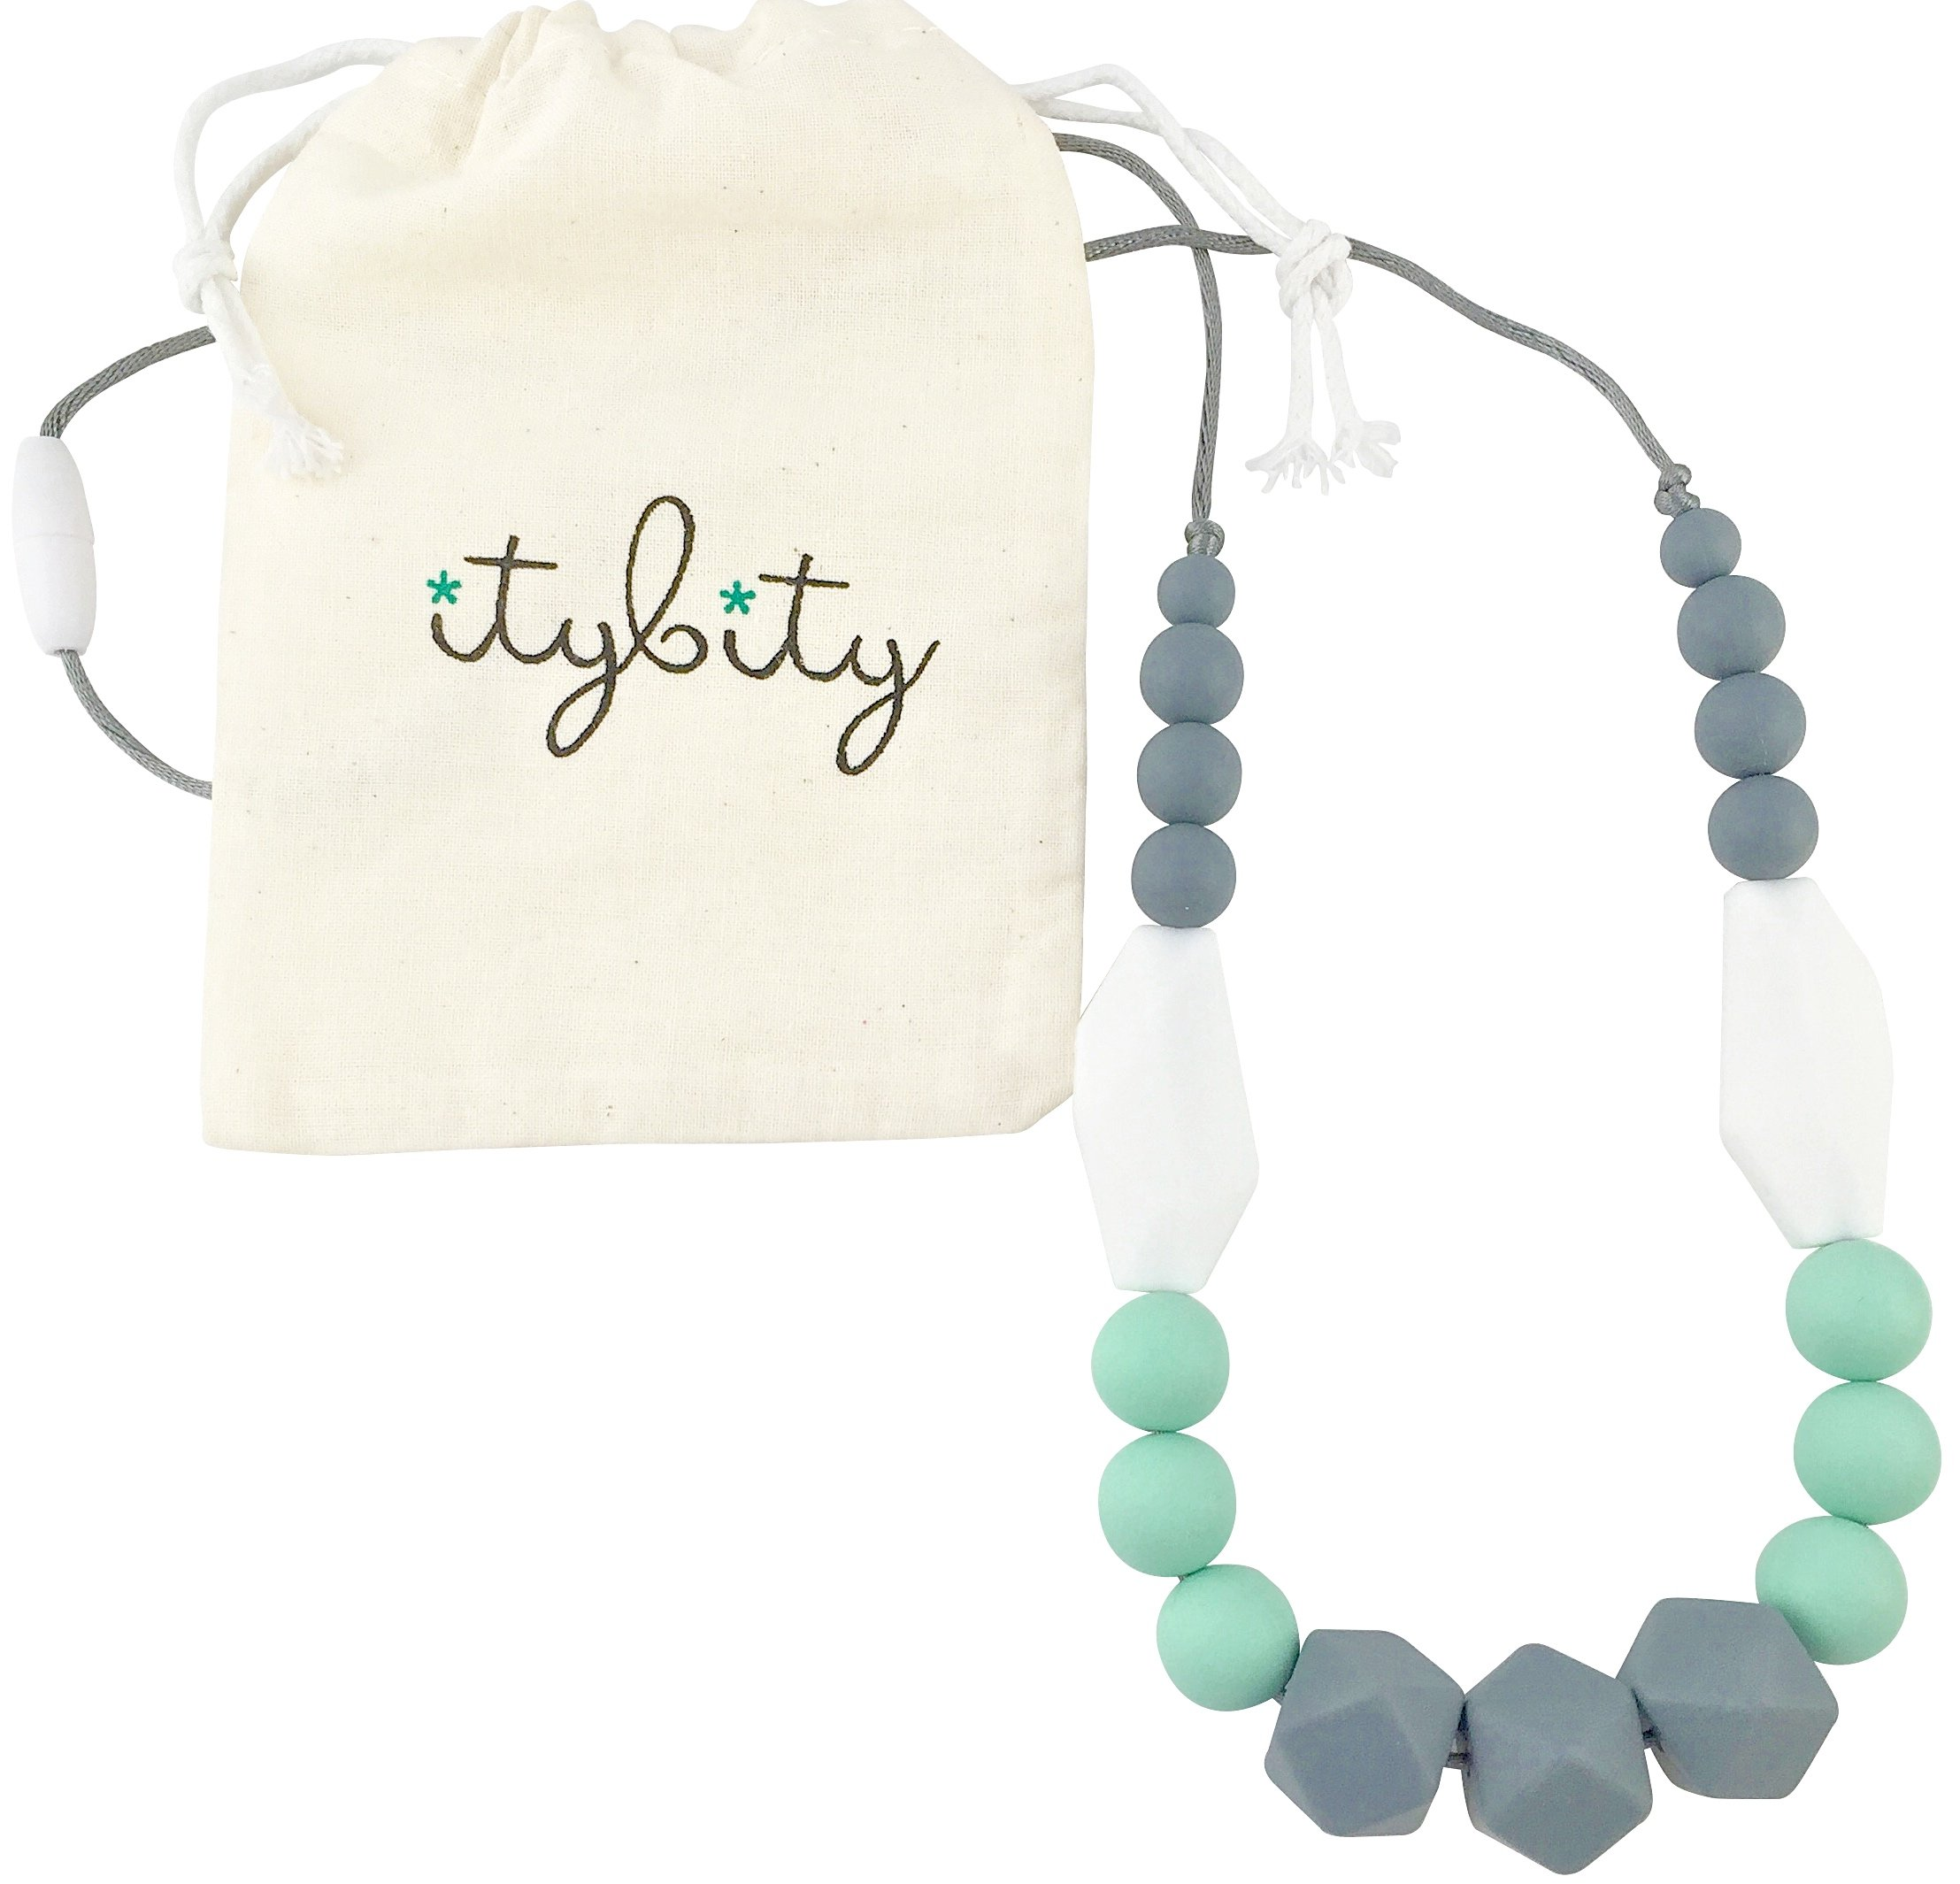 The Original Baby Teething Necklace for Mom, Silicone Teething Beads, 100% BPA Free (Gray, Mint, White, Gray) by Itybity